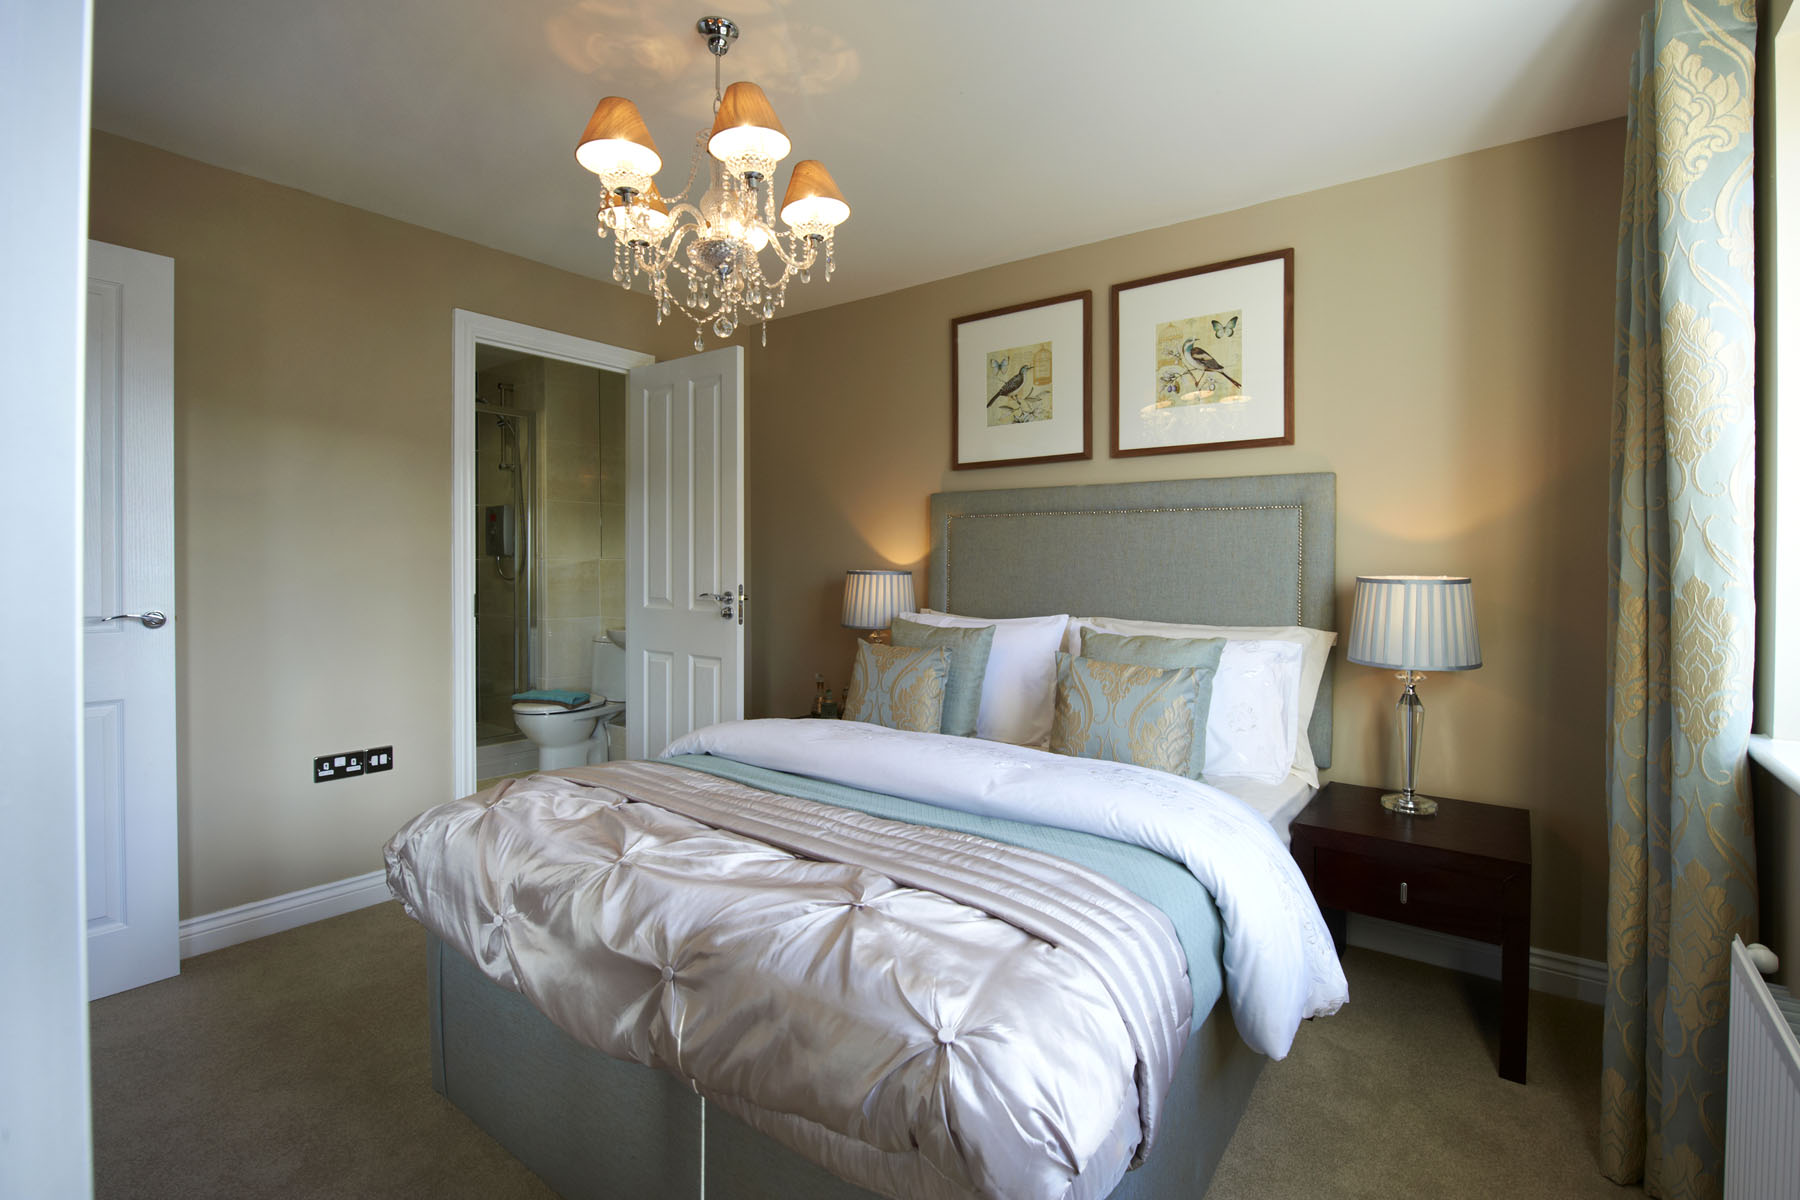 A typical Taylor Wimpey en suite bedroom